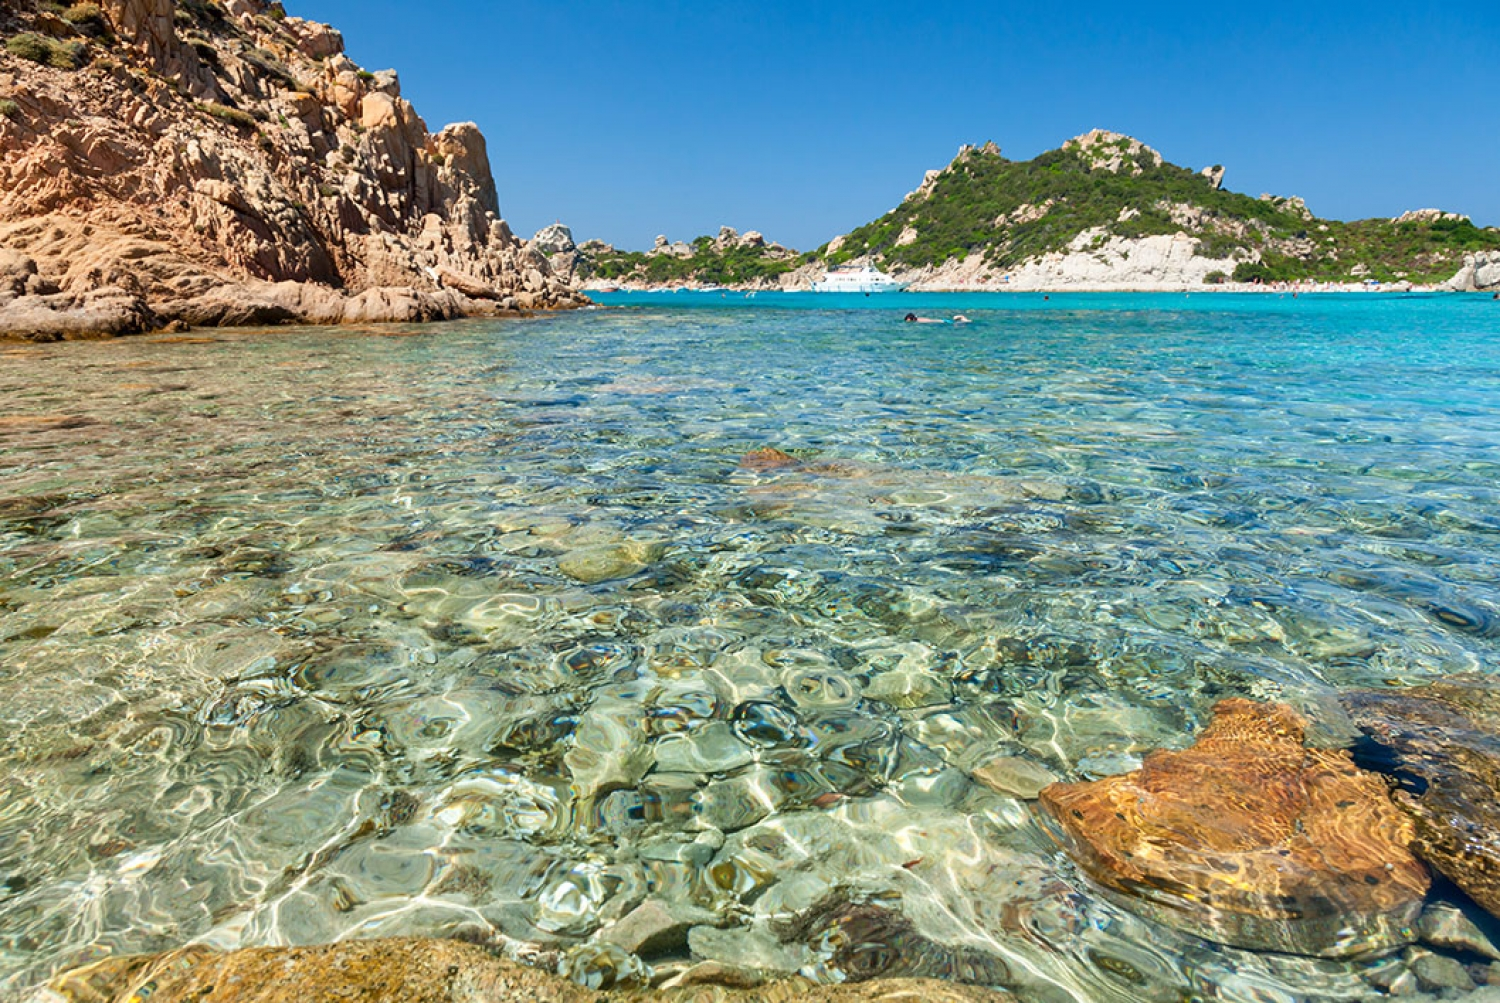 Cycling holiday Sardinia: best beaches in the world